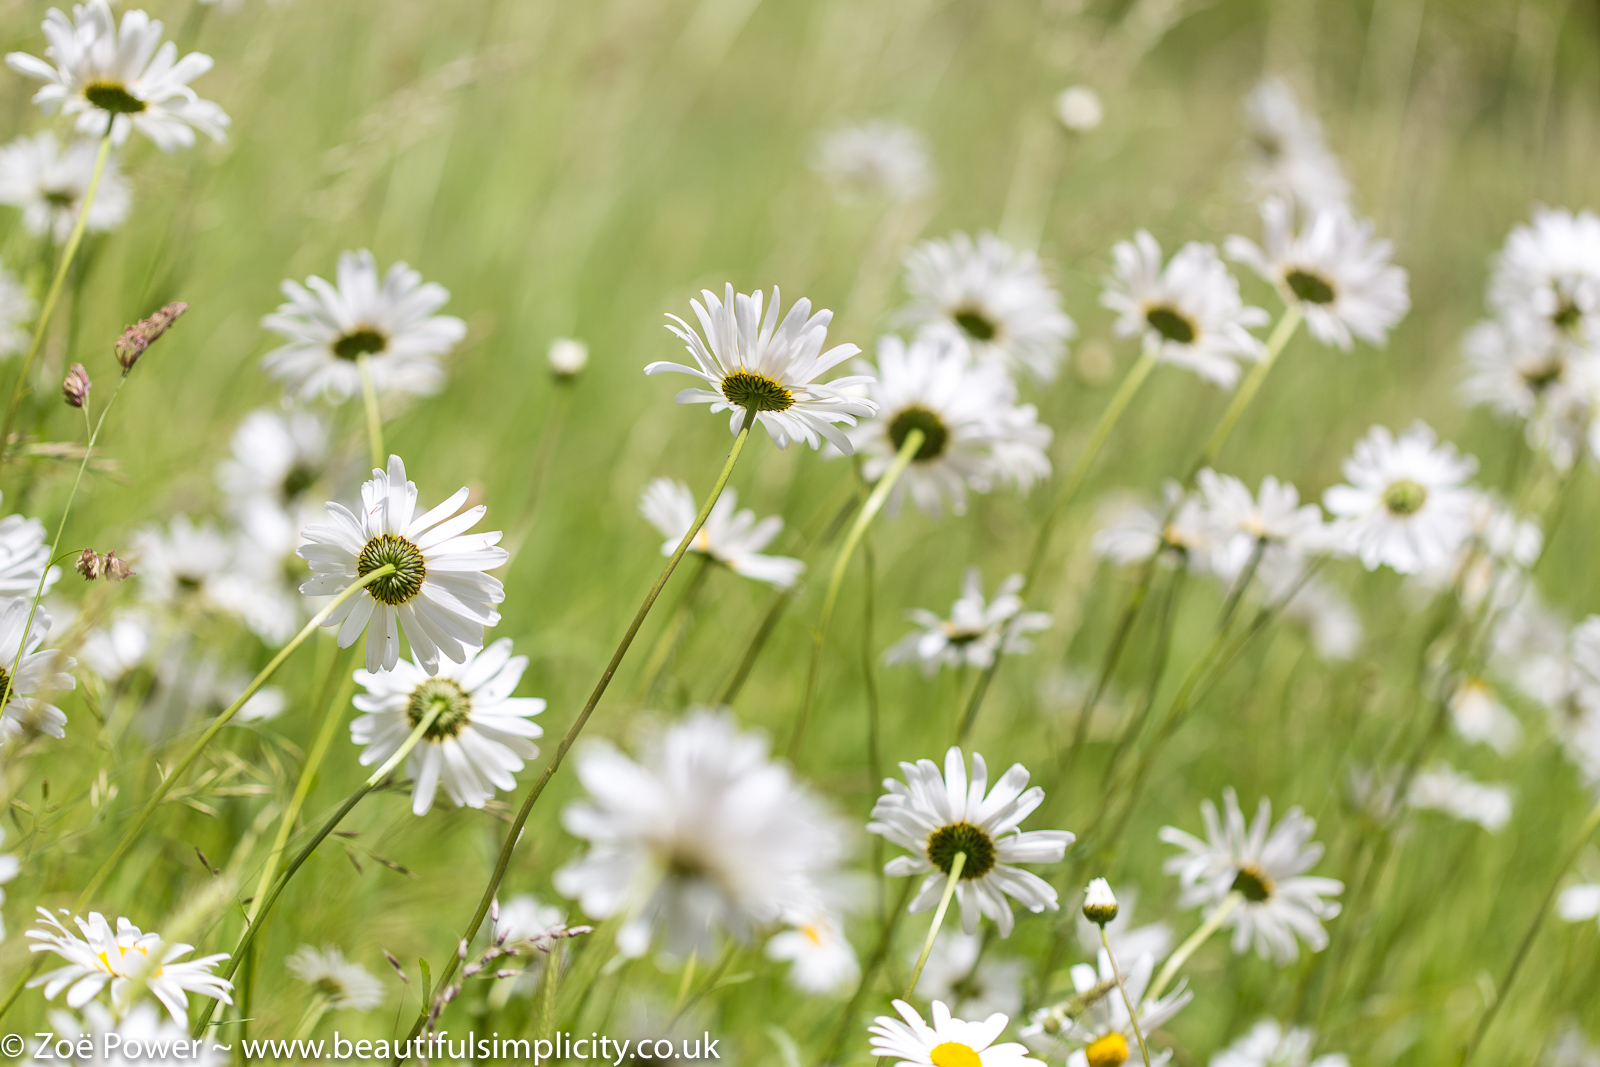 Summer daisies | Chronic Fatigue Syndrome (CFS)/ME - My Story - Part 1 of 3